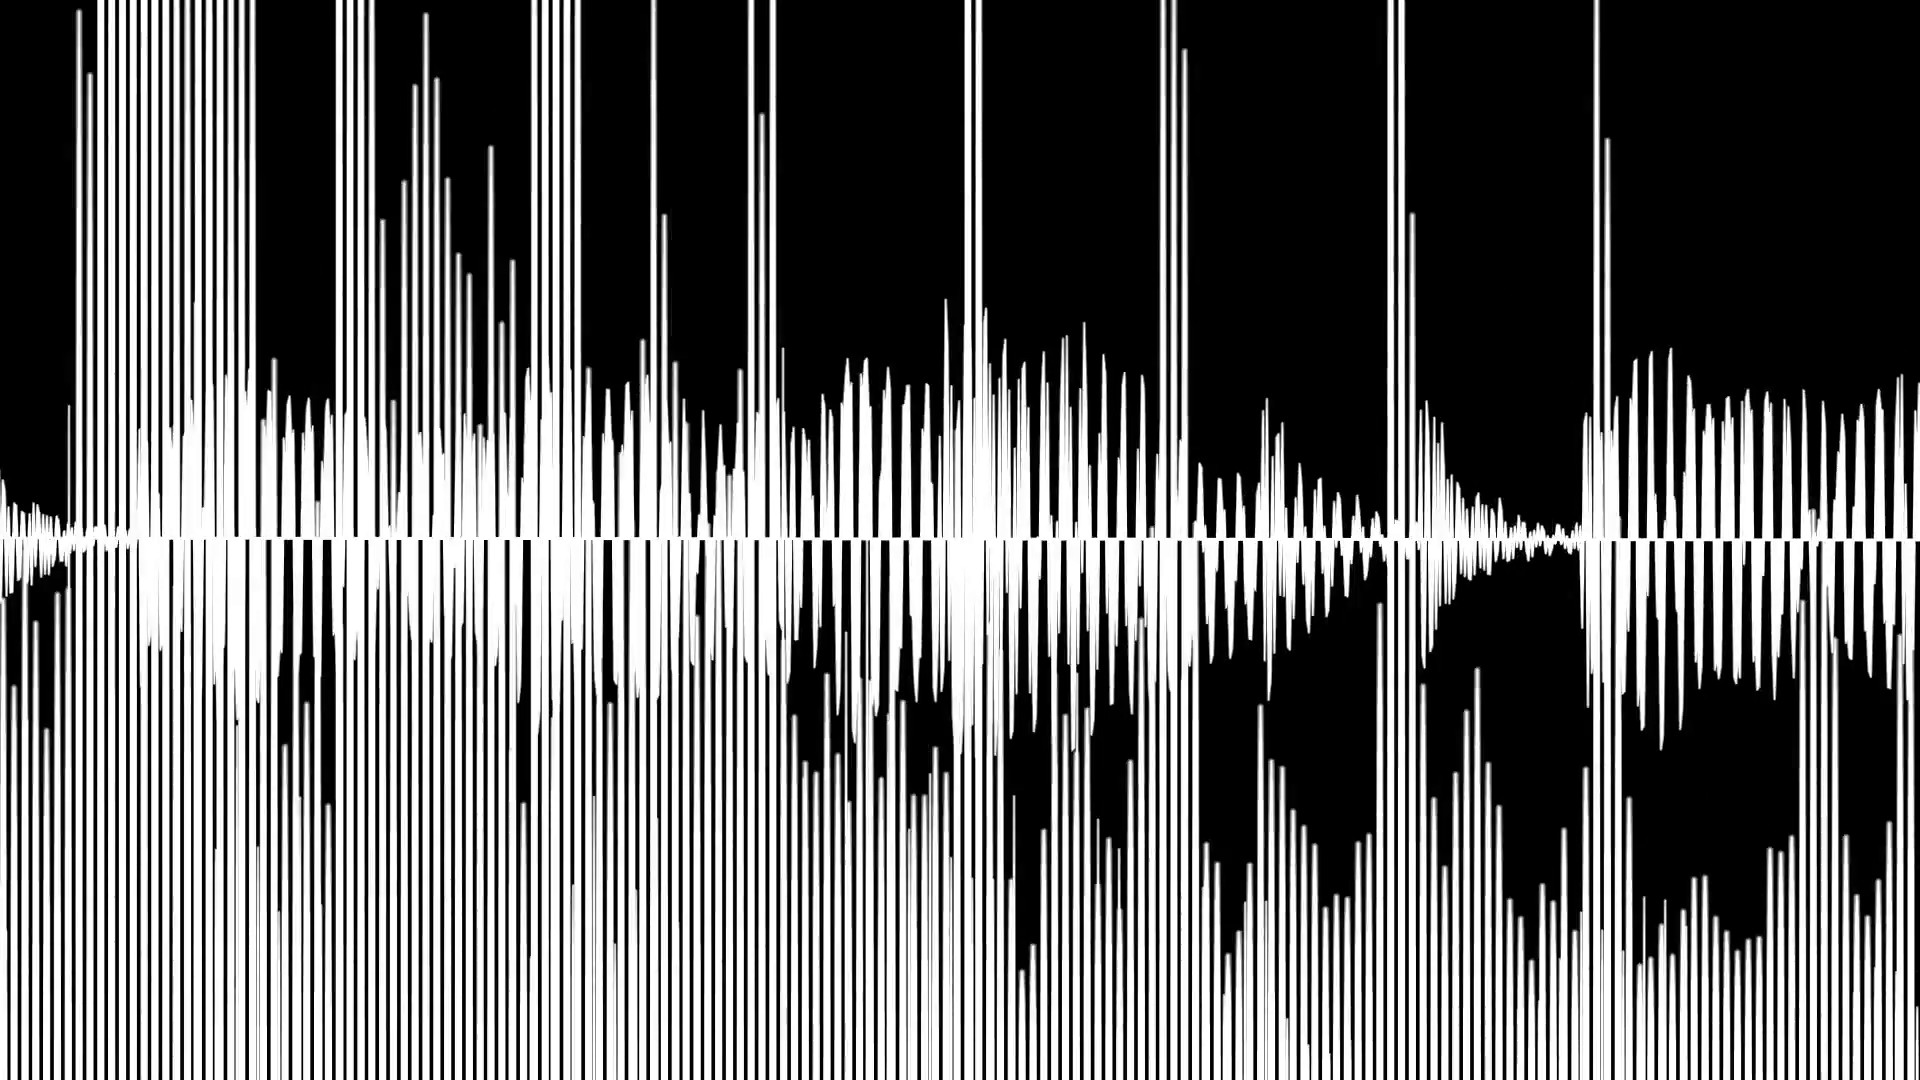 Subscription Library Audio waveform and spectrum animation, simple black  and white sound wave as motion background